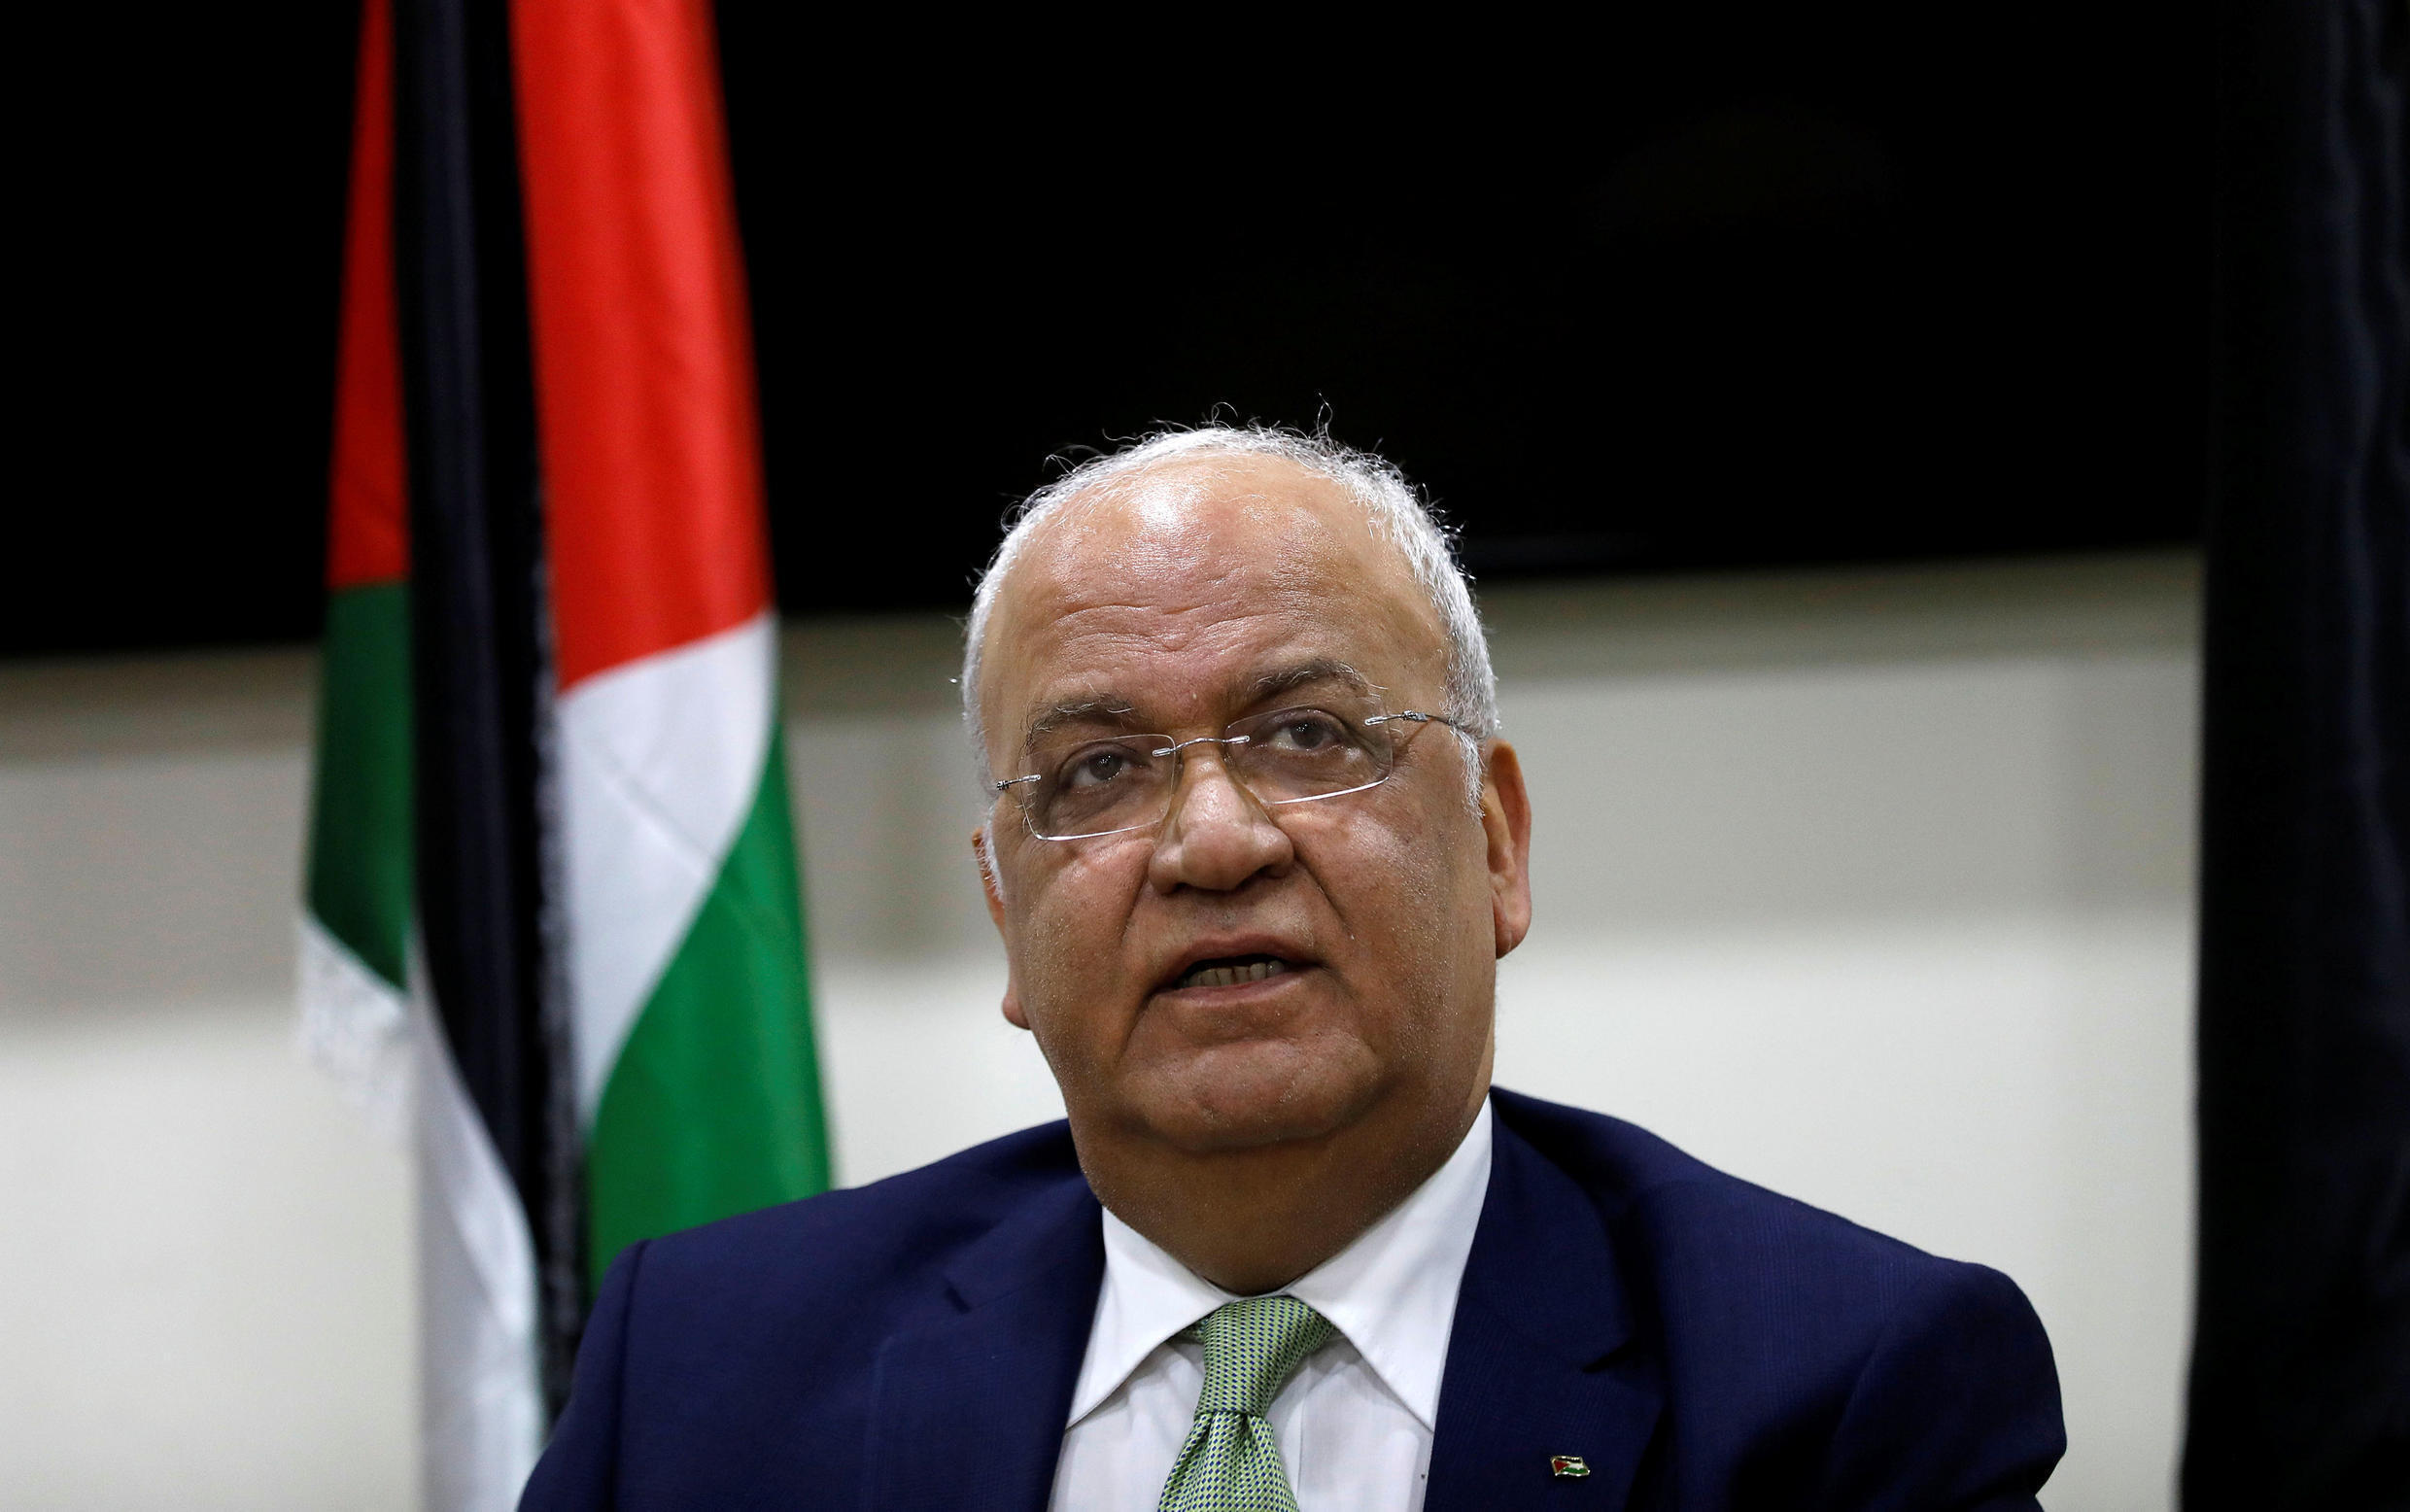 Chief Palestinian negotiator Saeb Erekat looks on during a news conference following his meeting with foreign diplomats in Ramallah, in the Israeli-occupied West Bank